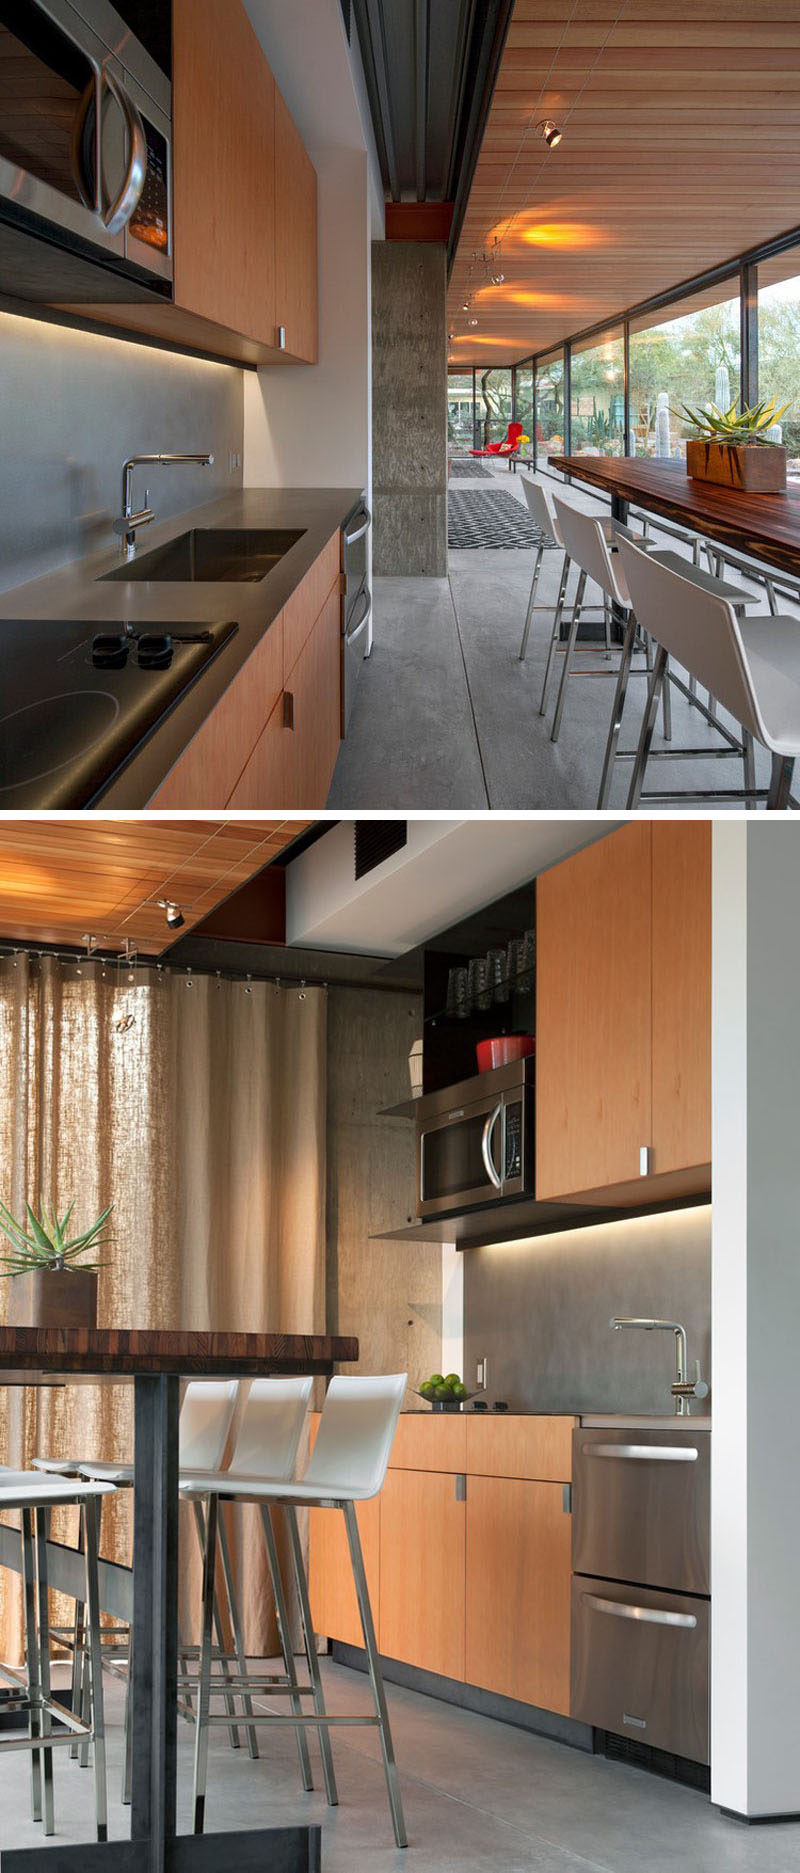 Stepping inside this modern guest house, there's a small kitchen with the essentials and a bar table with plenty of seating. #SmallKitchen #KitchenDesign #WoodKitchen #InteriorDesign #ModernKitchen